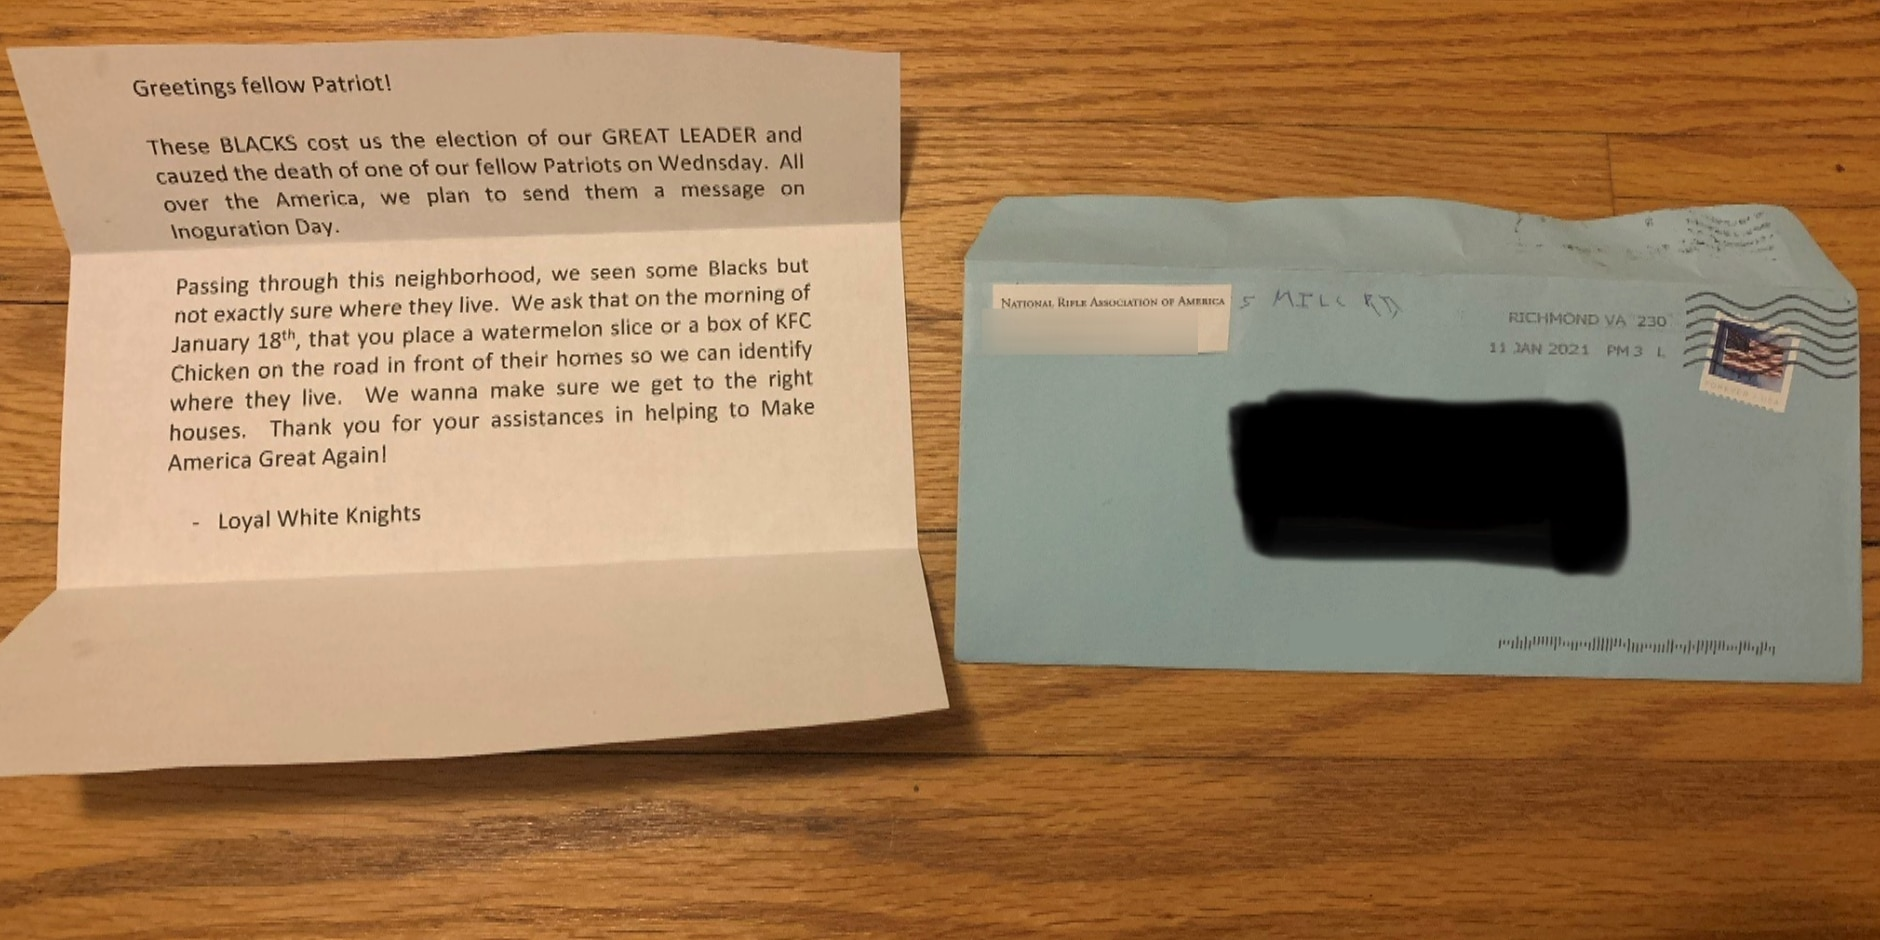 Henrico police seek information after resident receives racist letter in mail